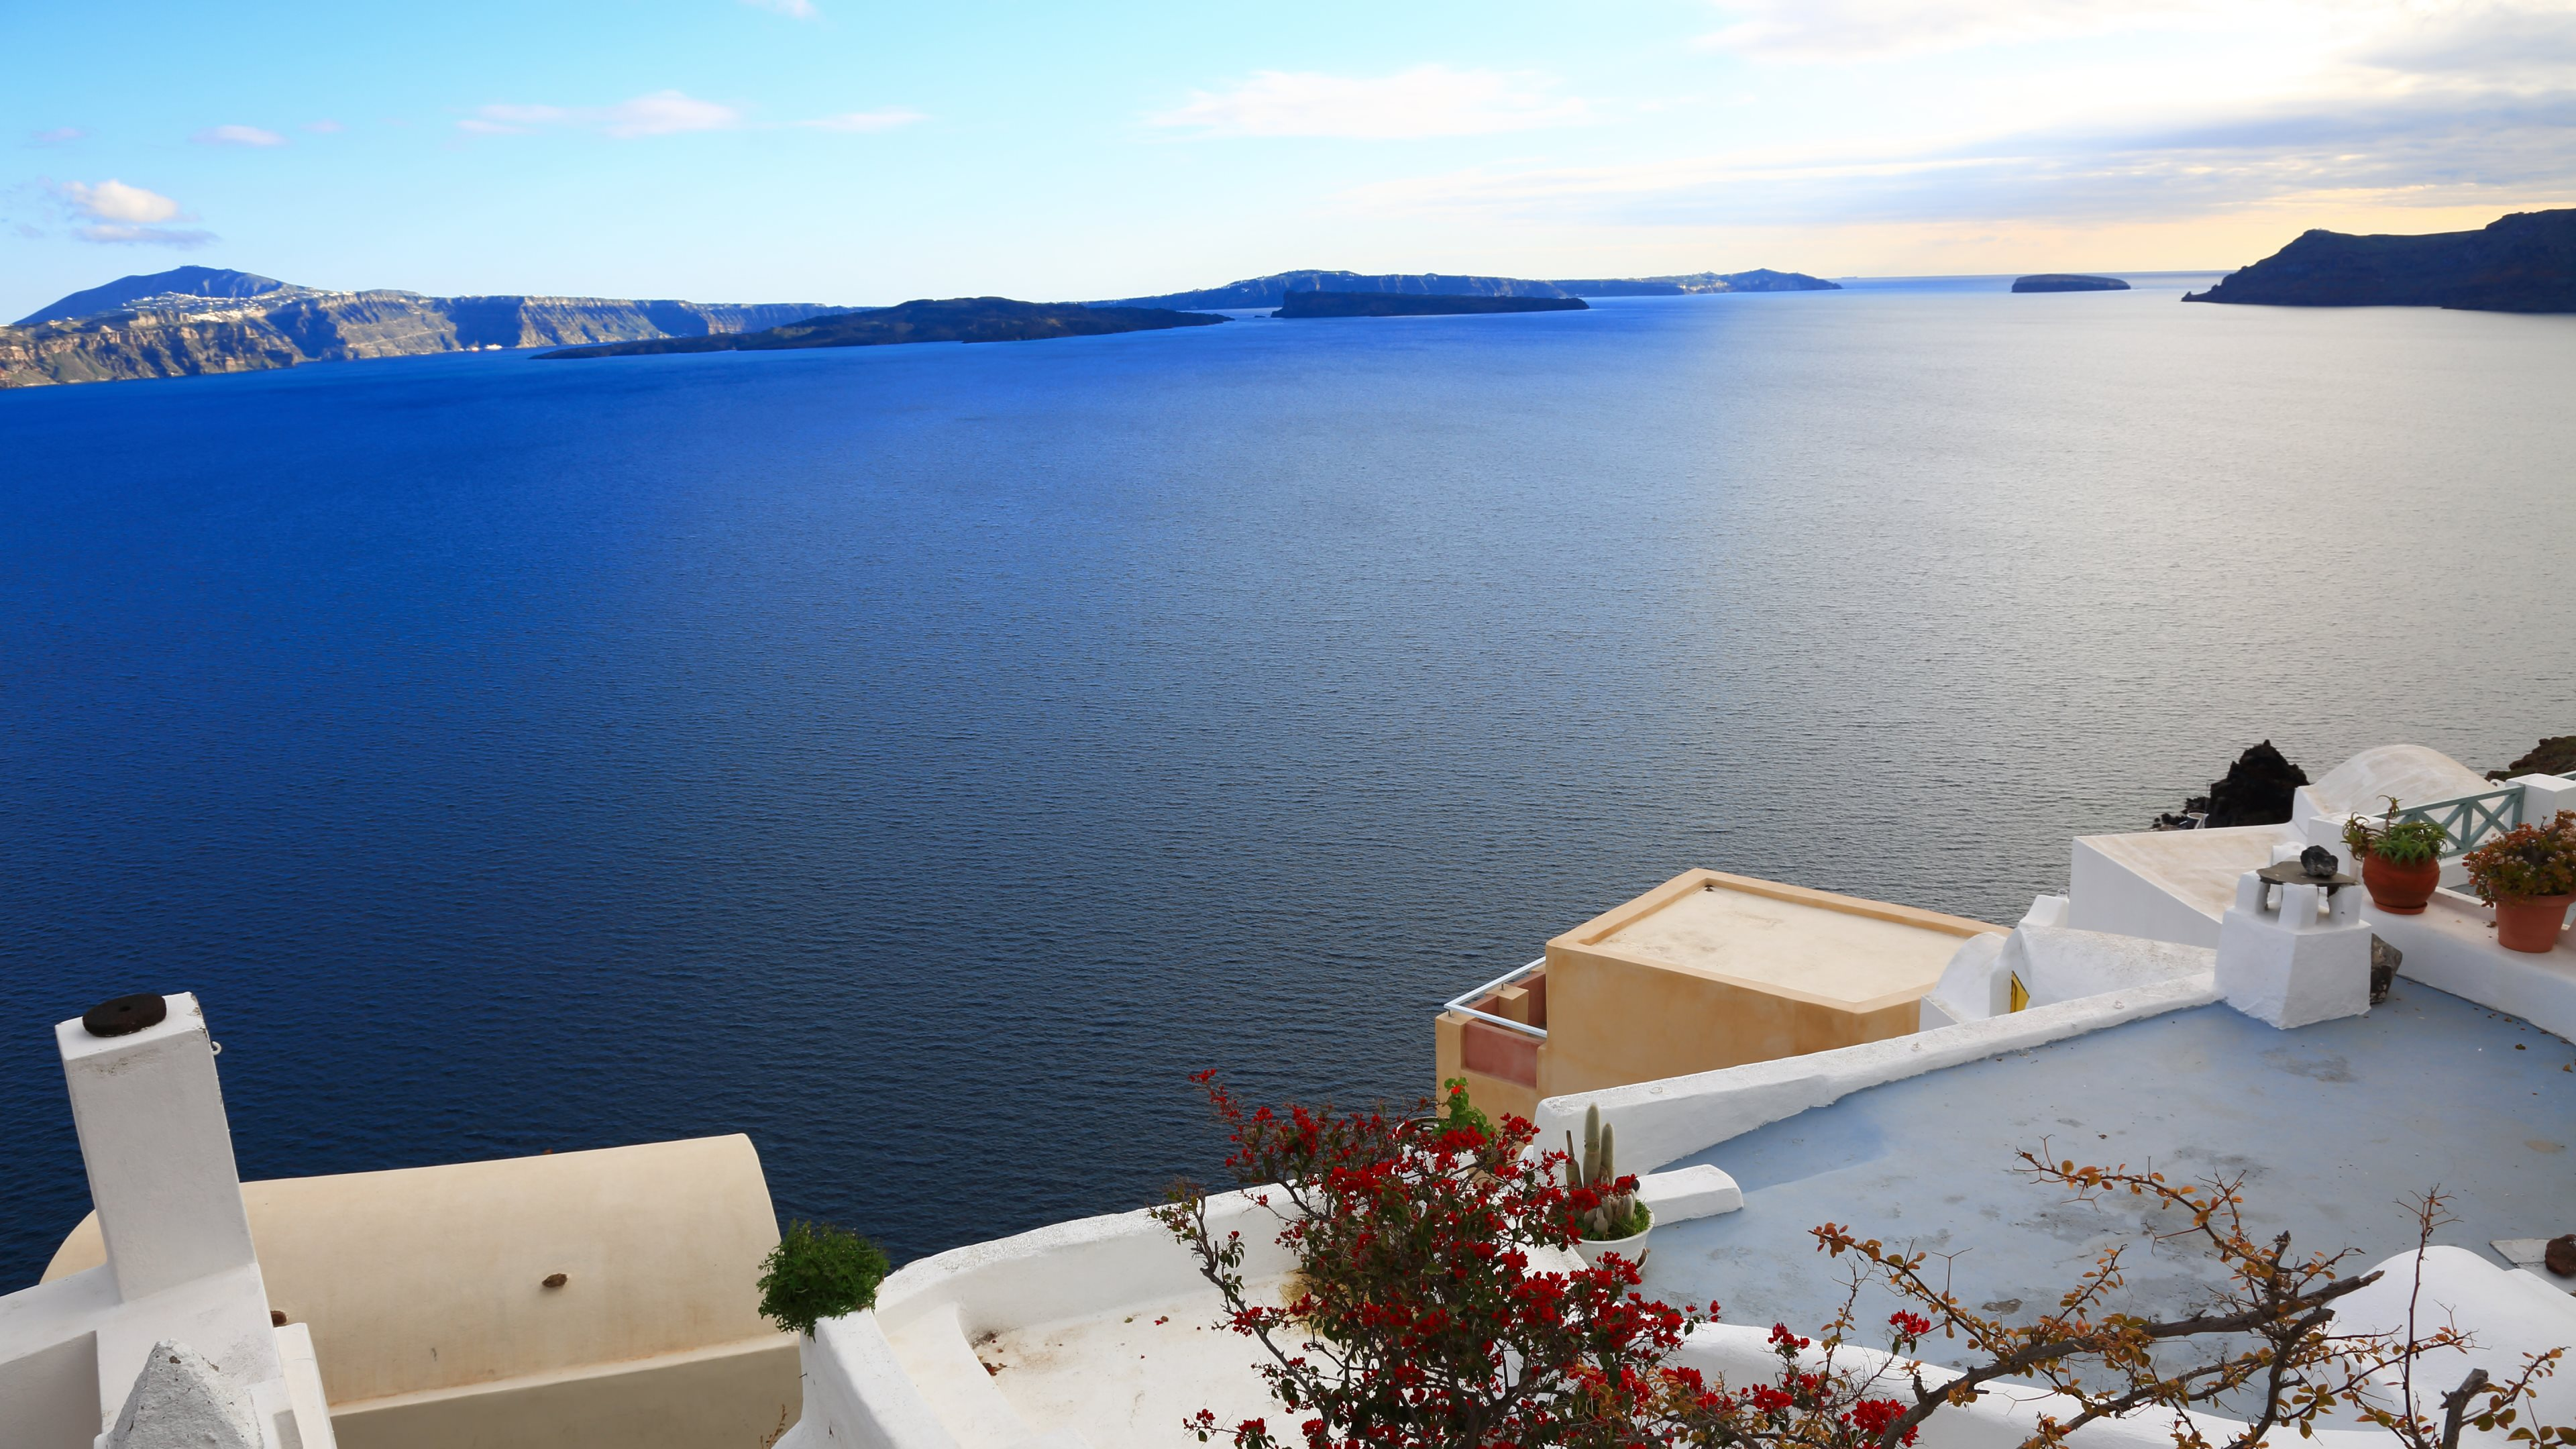 Santorini Wallpapers Pictures Images 3840x2160